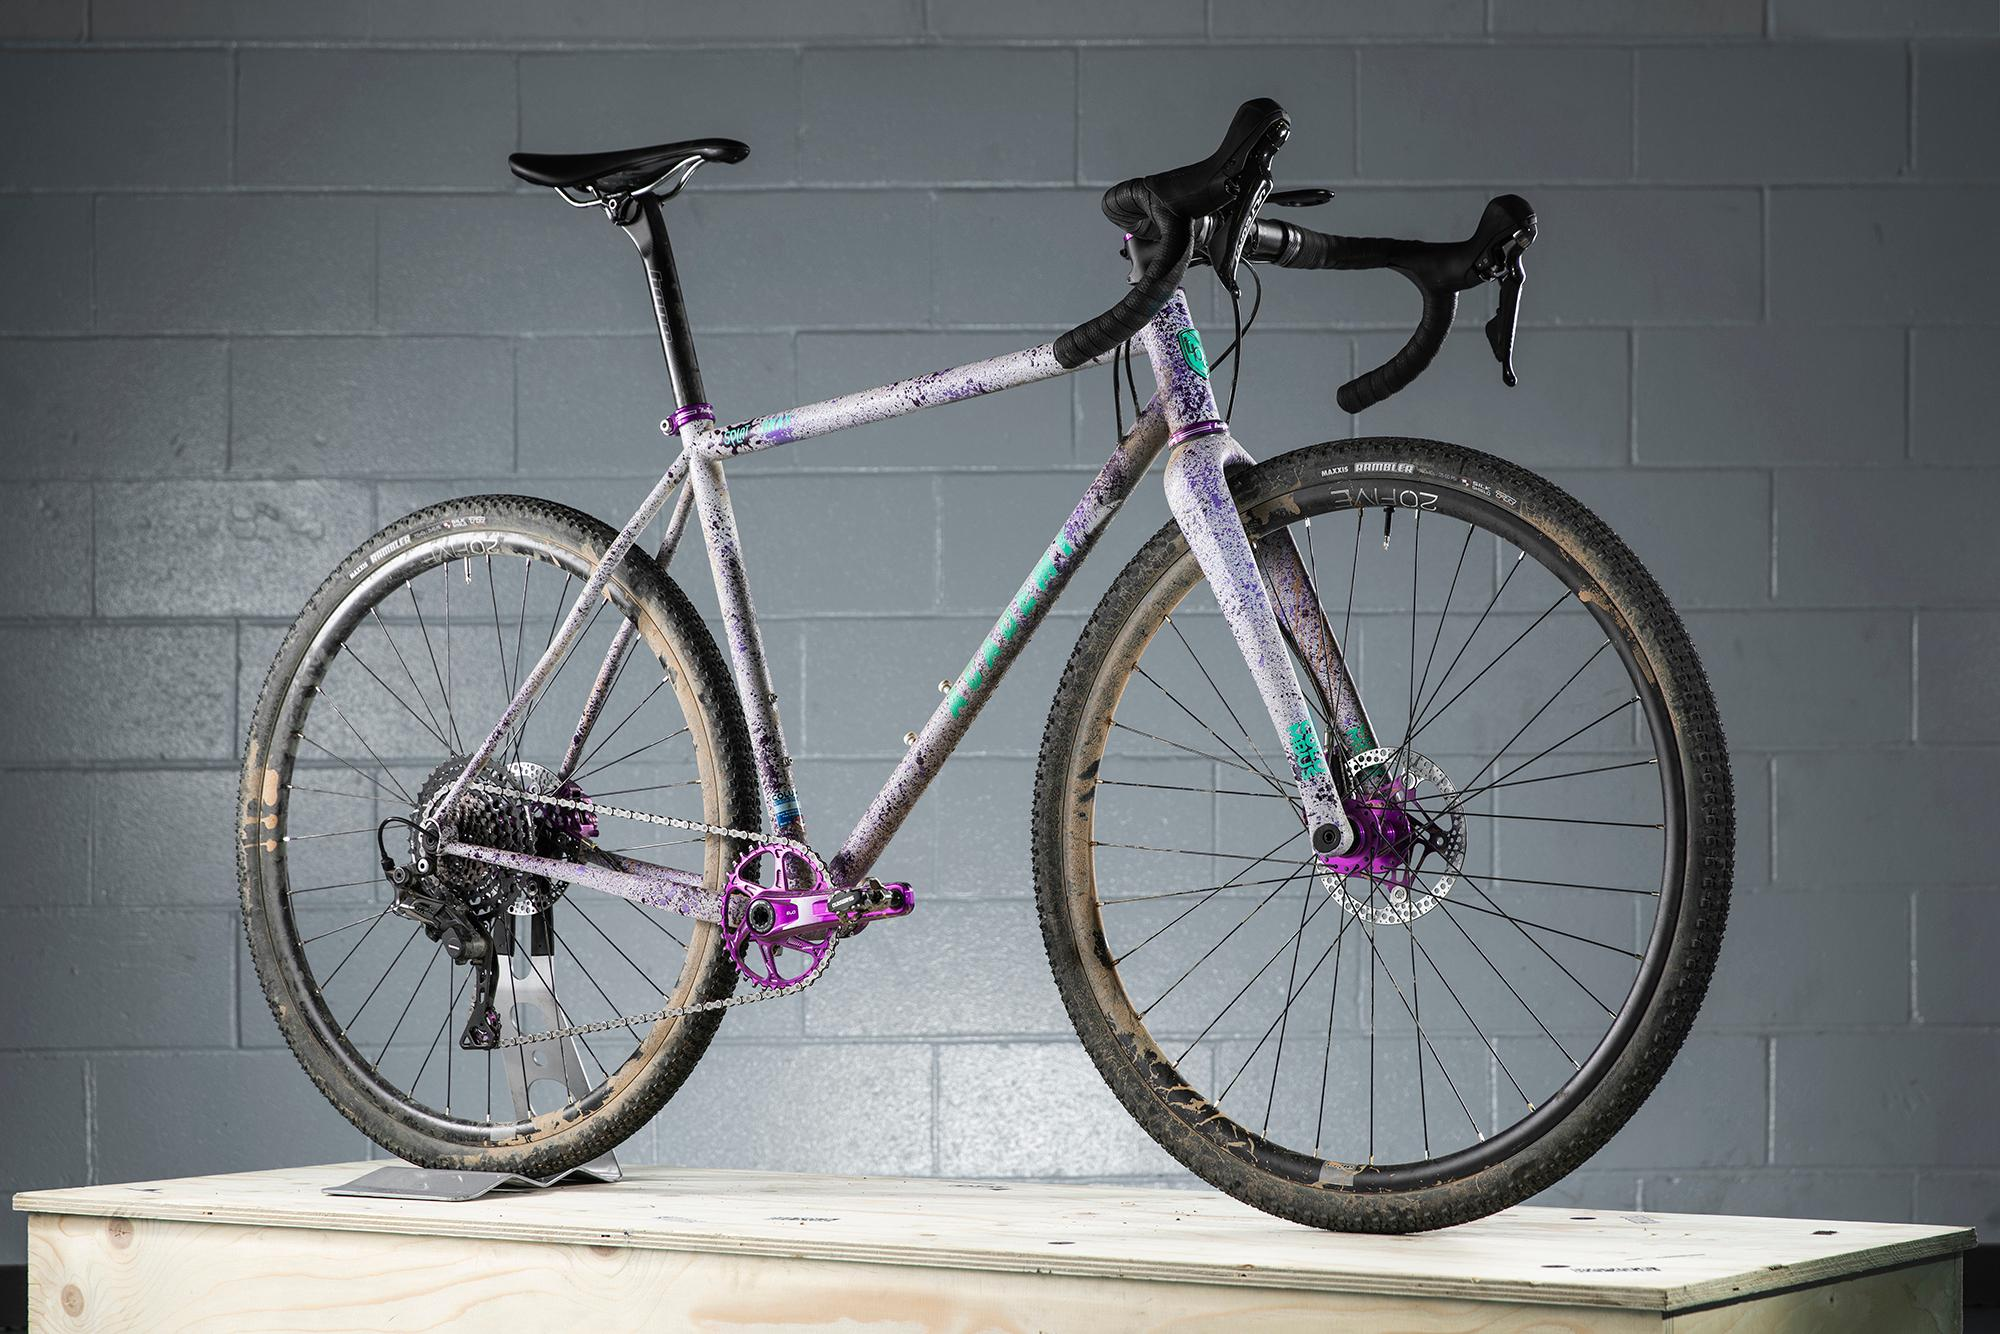 Grinduro Splat Grav custom build by The Bicycle Academy.Grinduro, Isle of Arran, Scotland, 13 Jult 2019